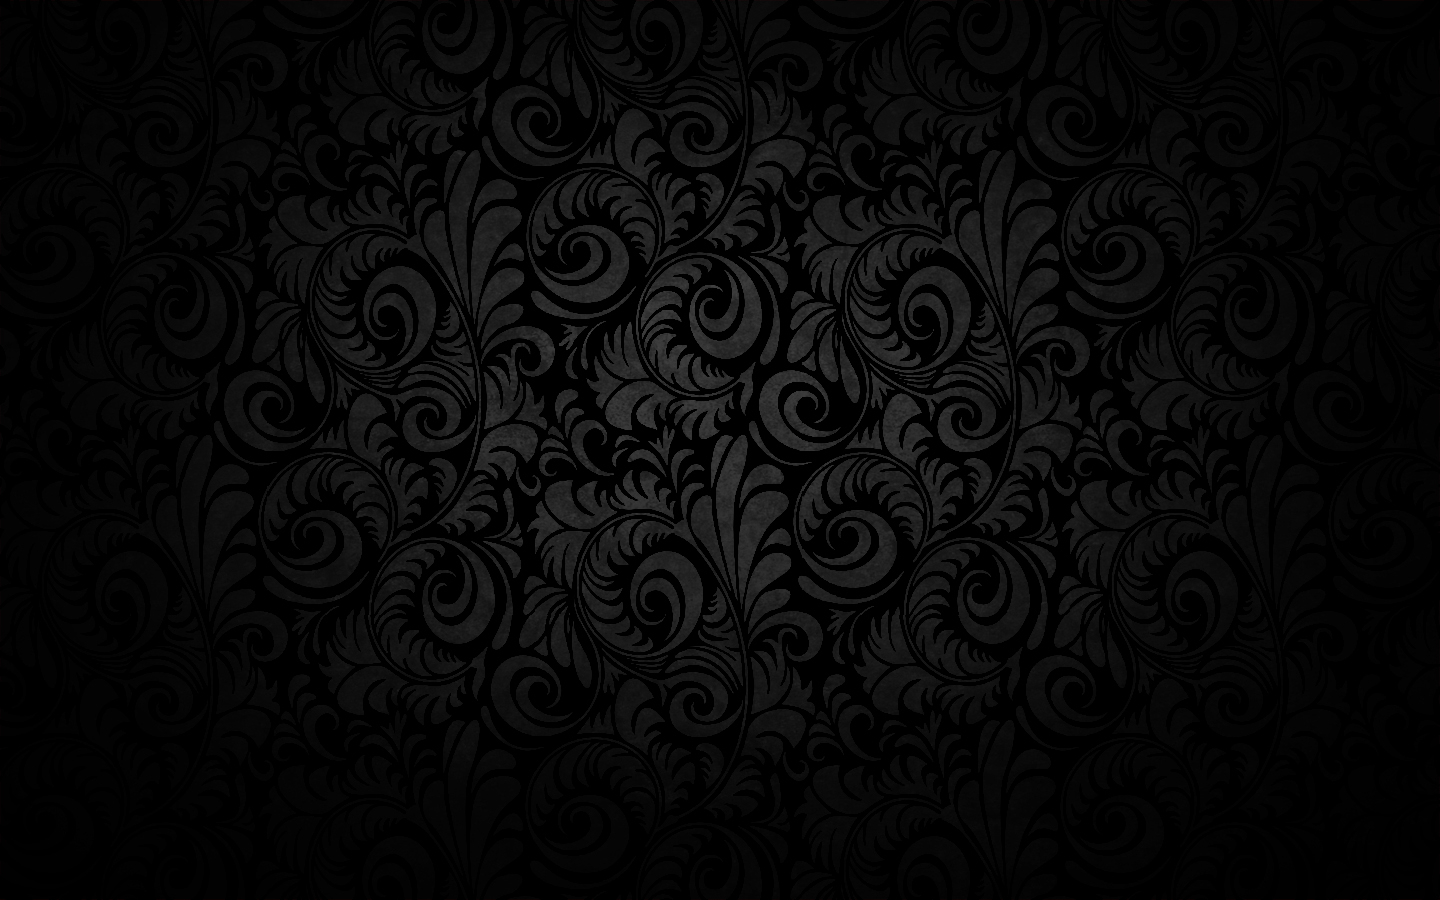 Hd desktop wallpapers black white wallpaper black on for Black and white wallpaper for walls